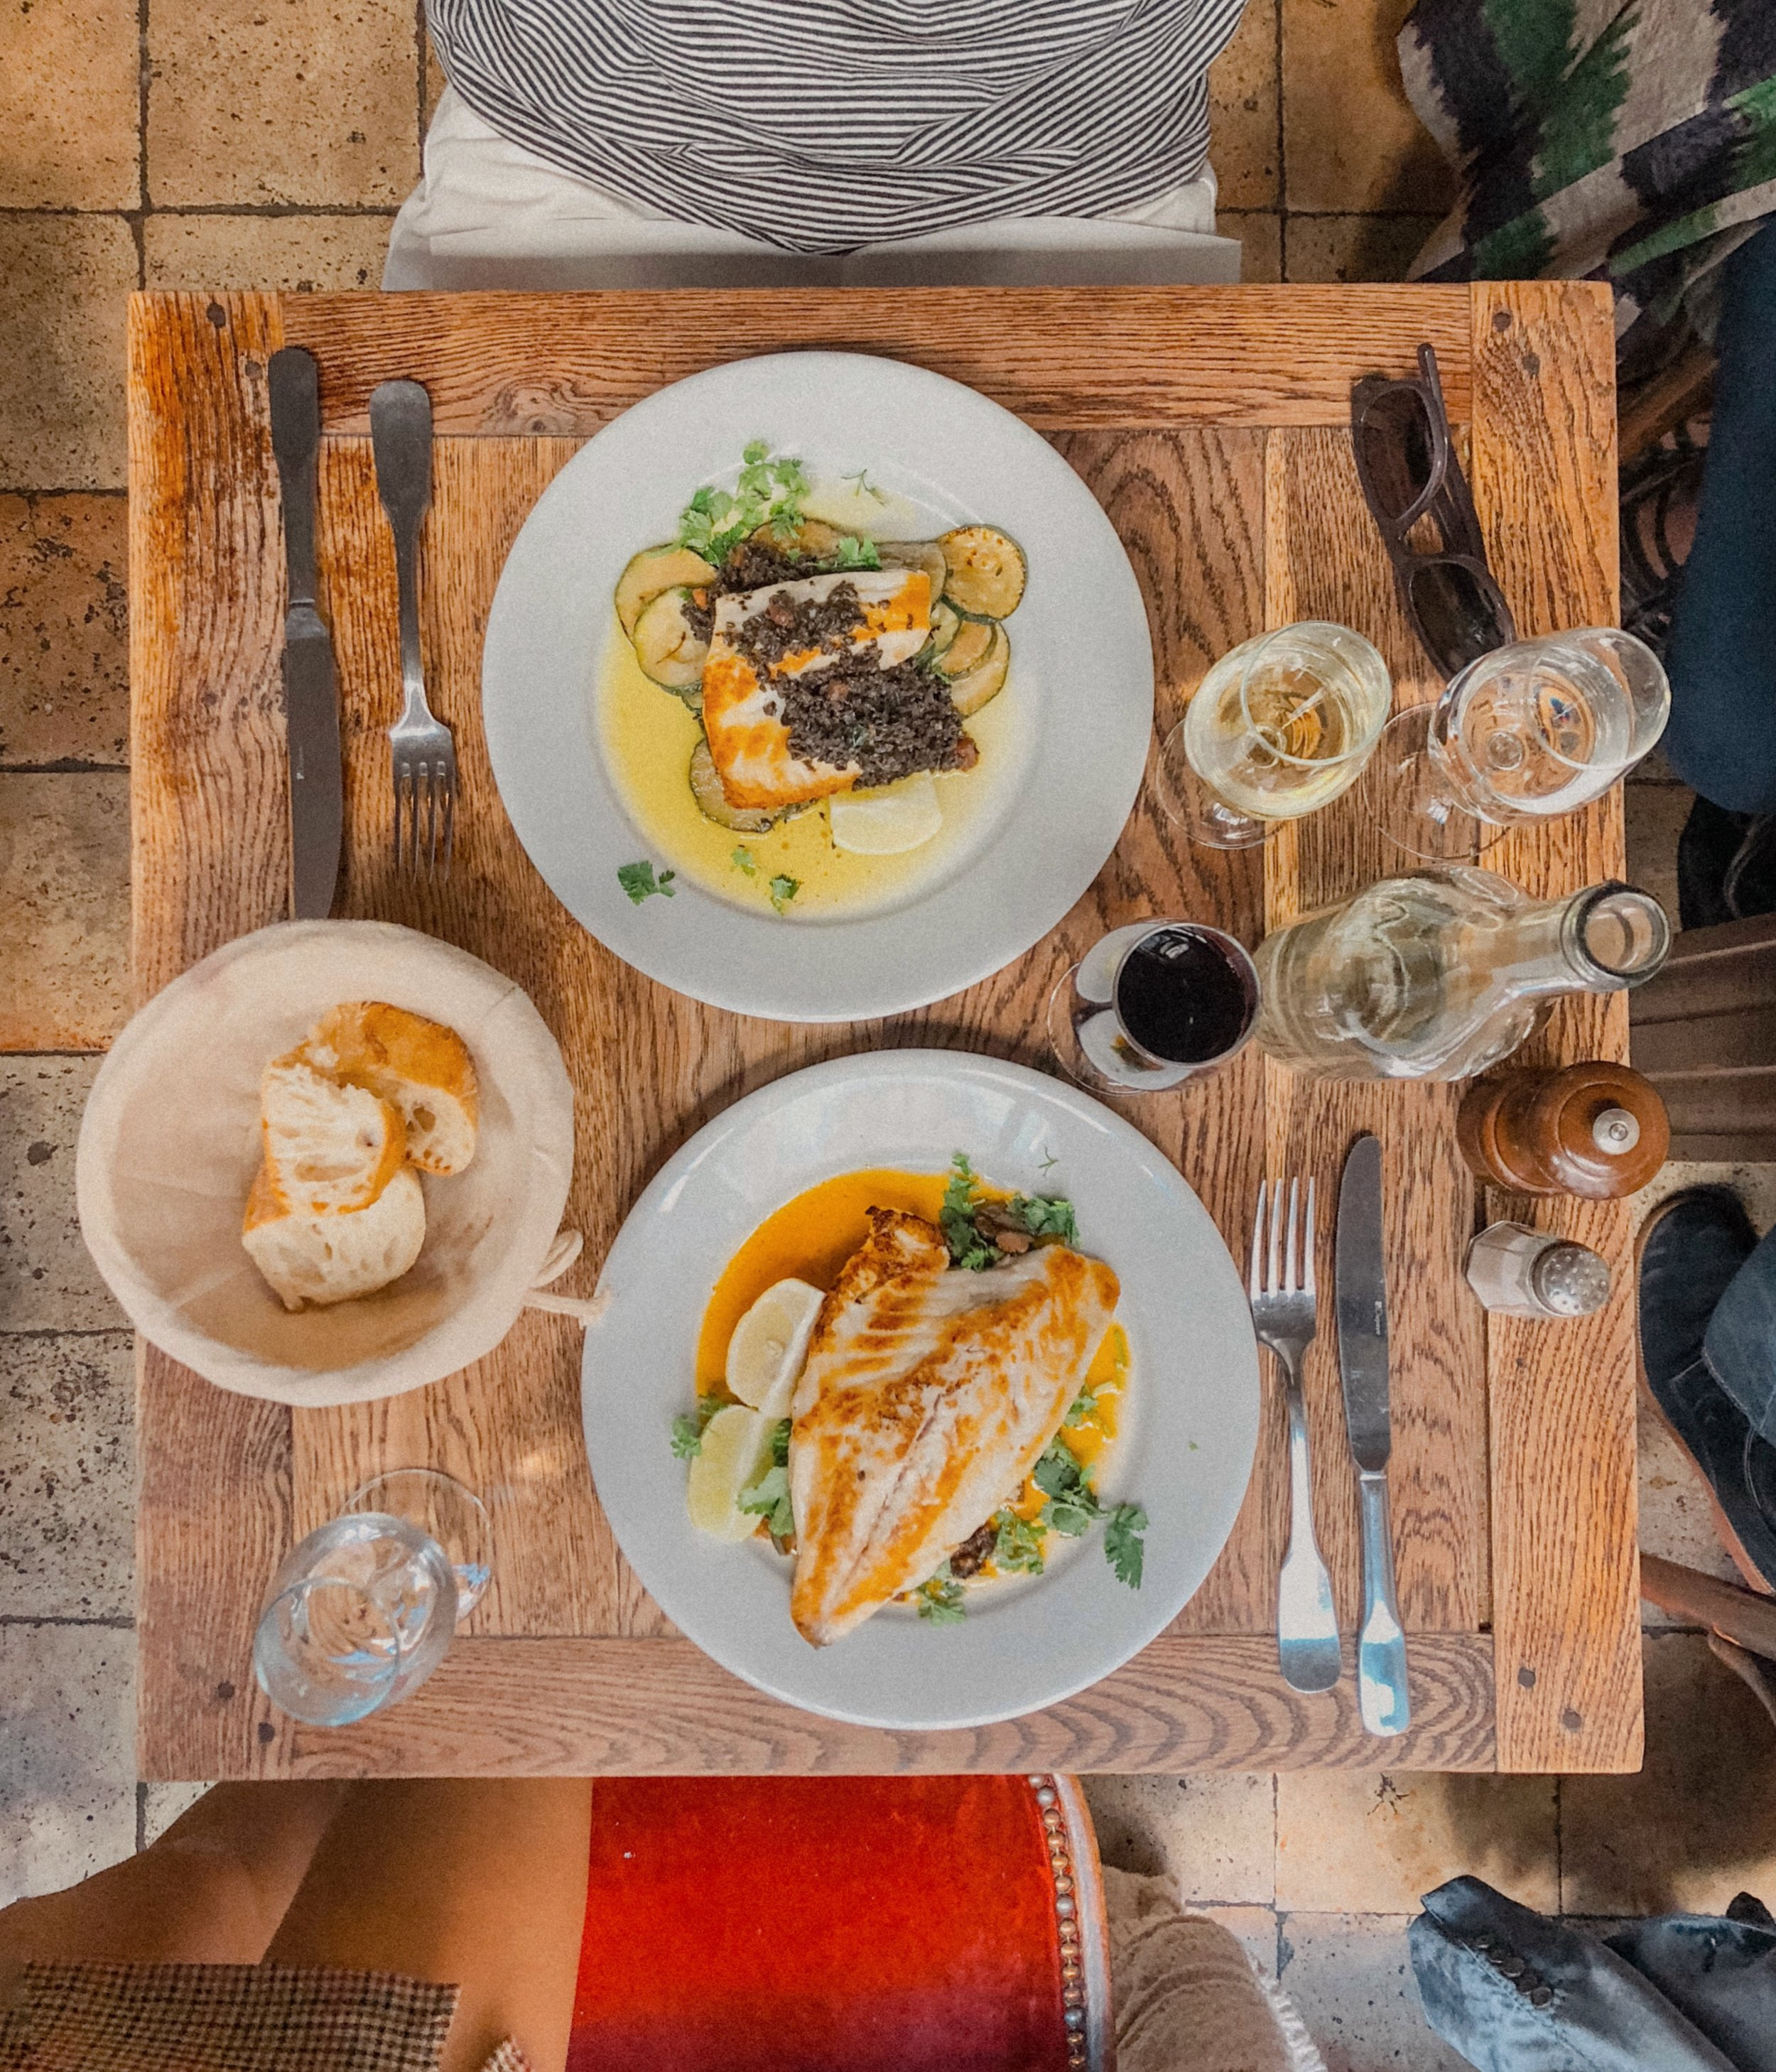 Situated on a quiet street steps away from Musée d'Orsay was this total local joint specializing in French-prepared fish and natural wine. A highlight meal of the trip!